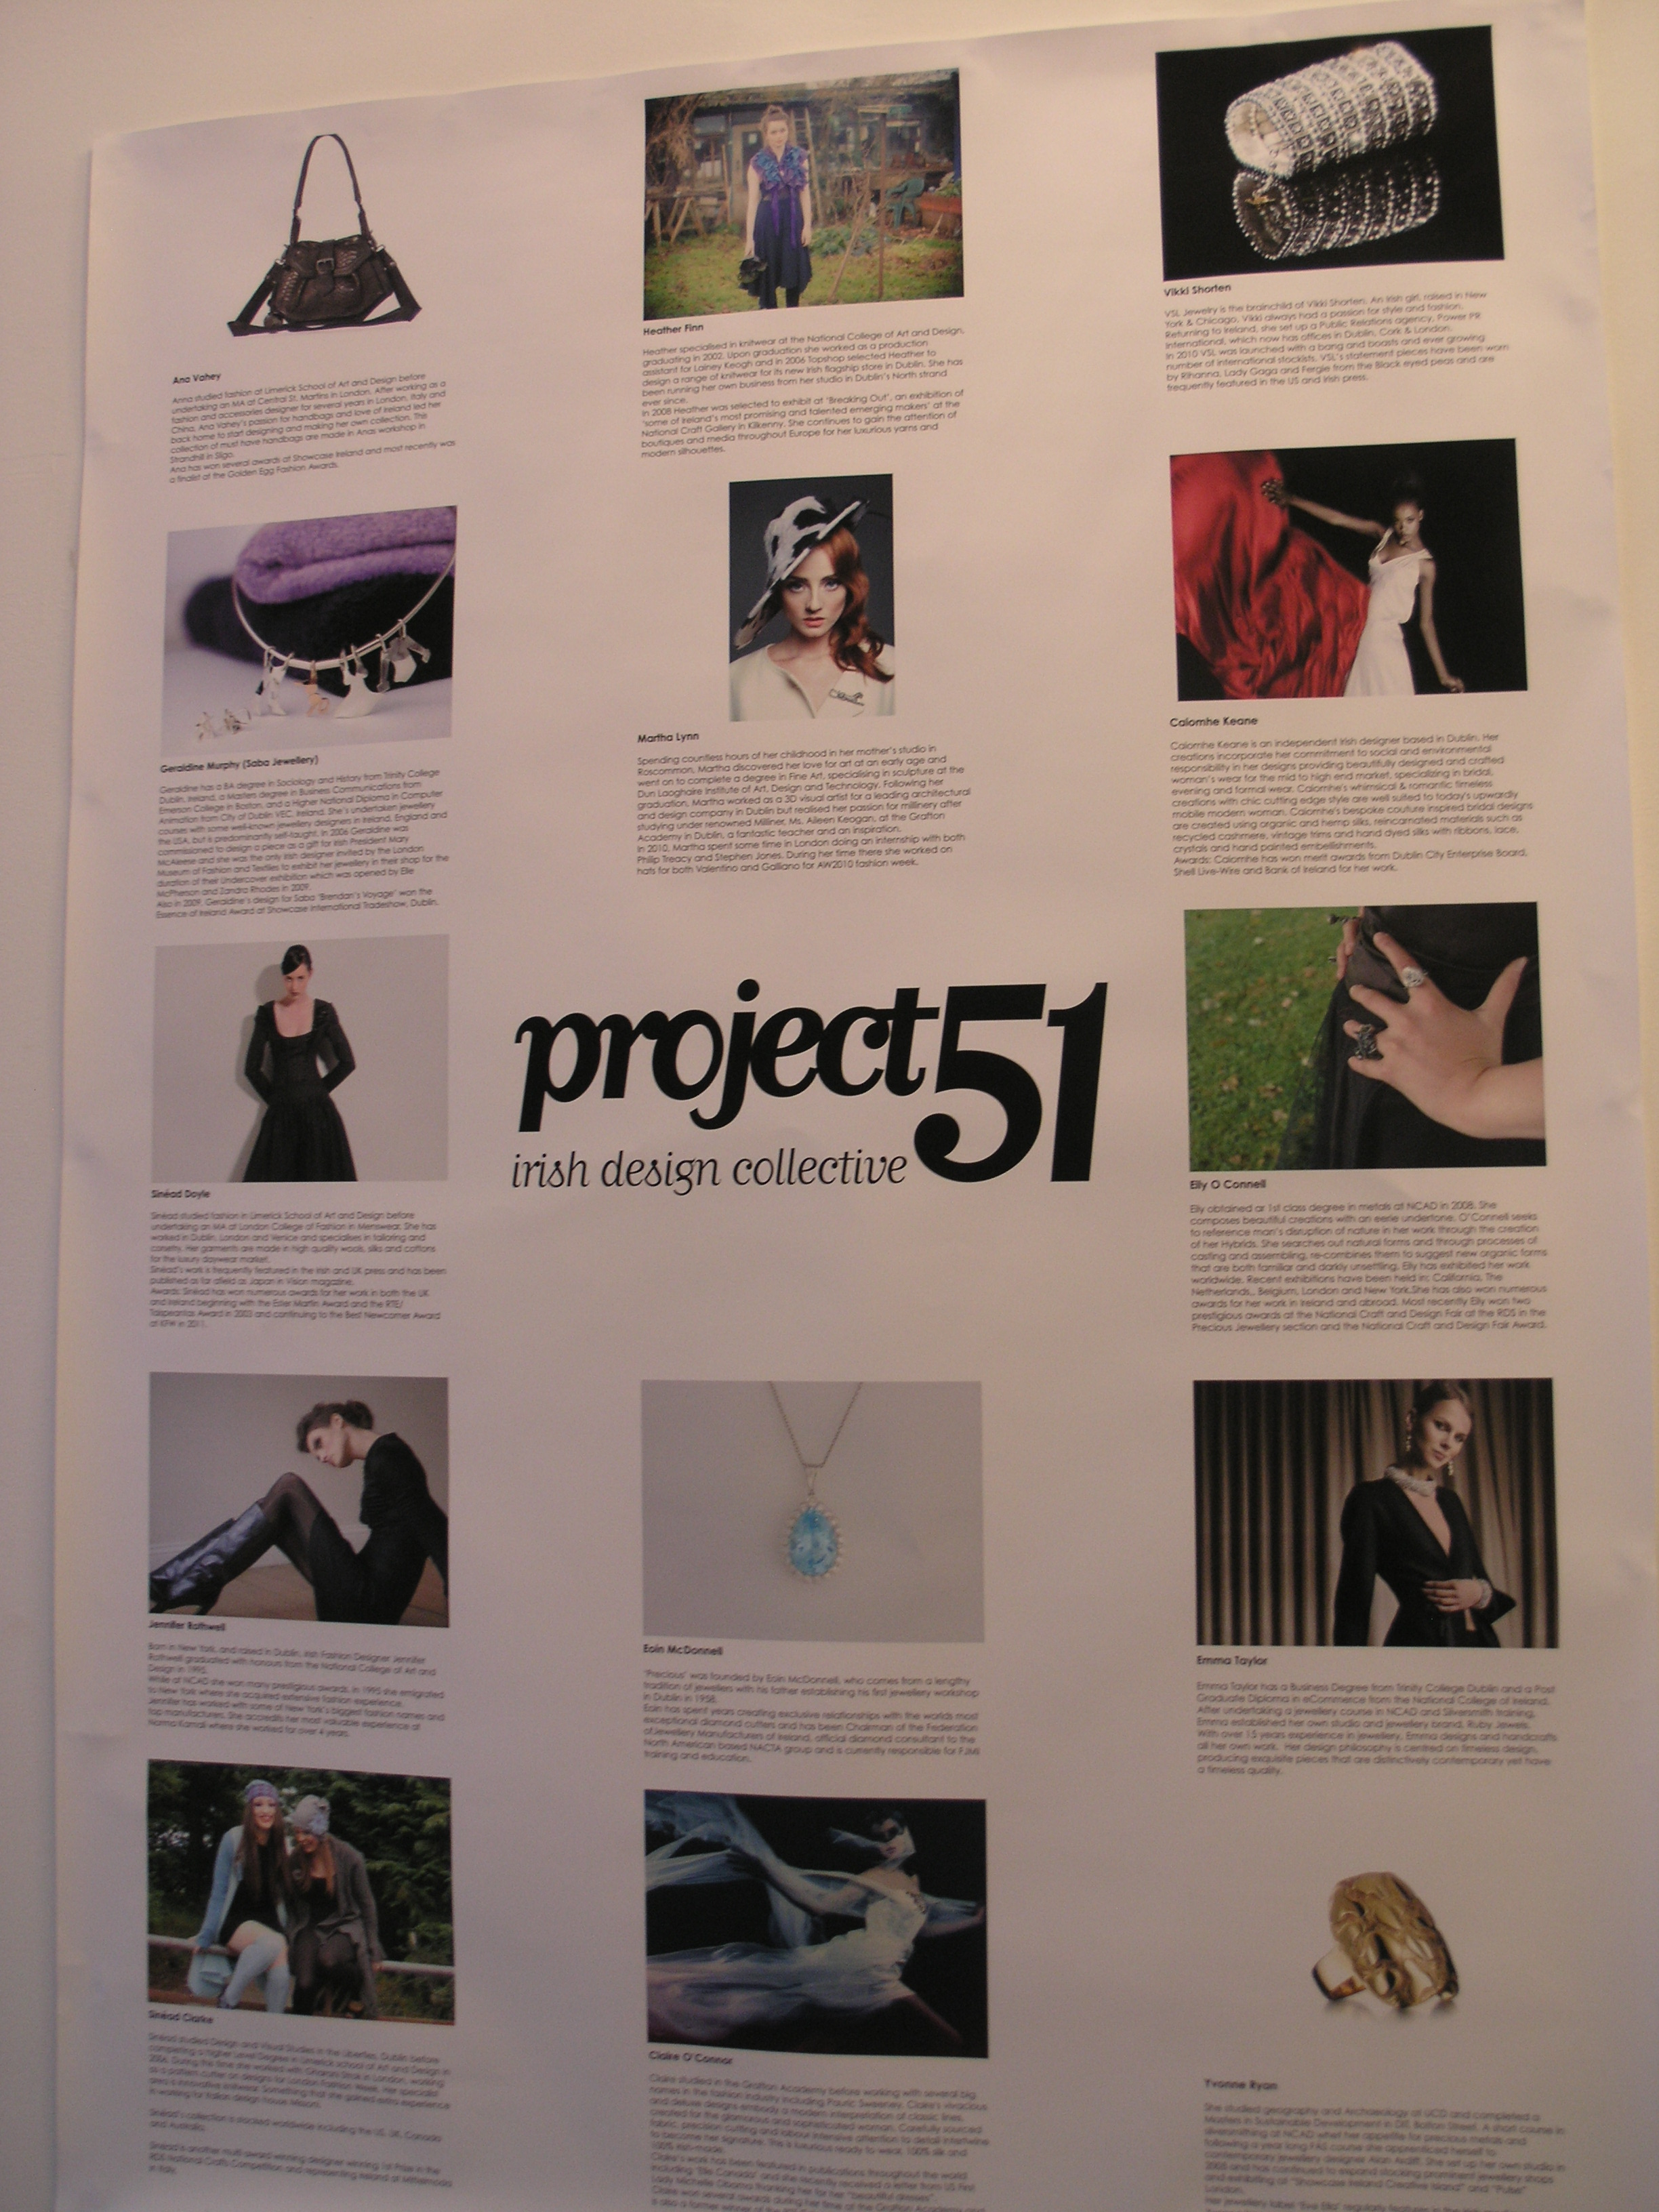 Video: Meet the Designers behind Project 51